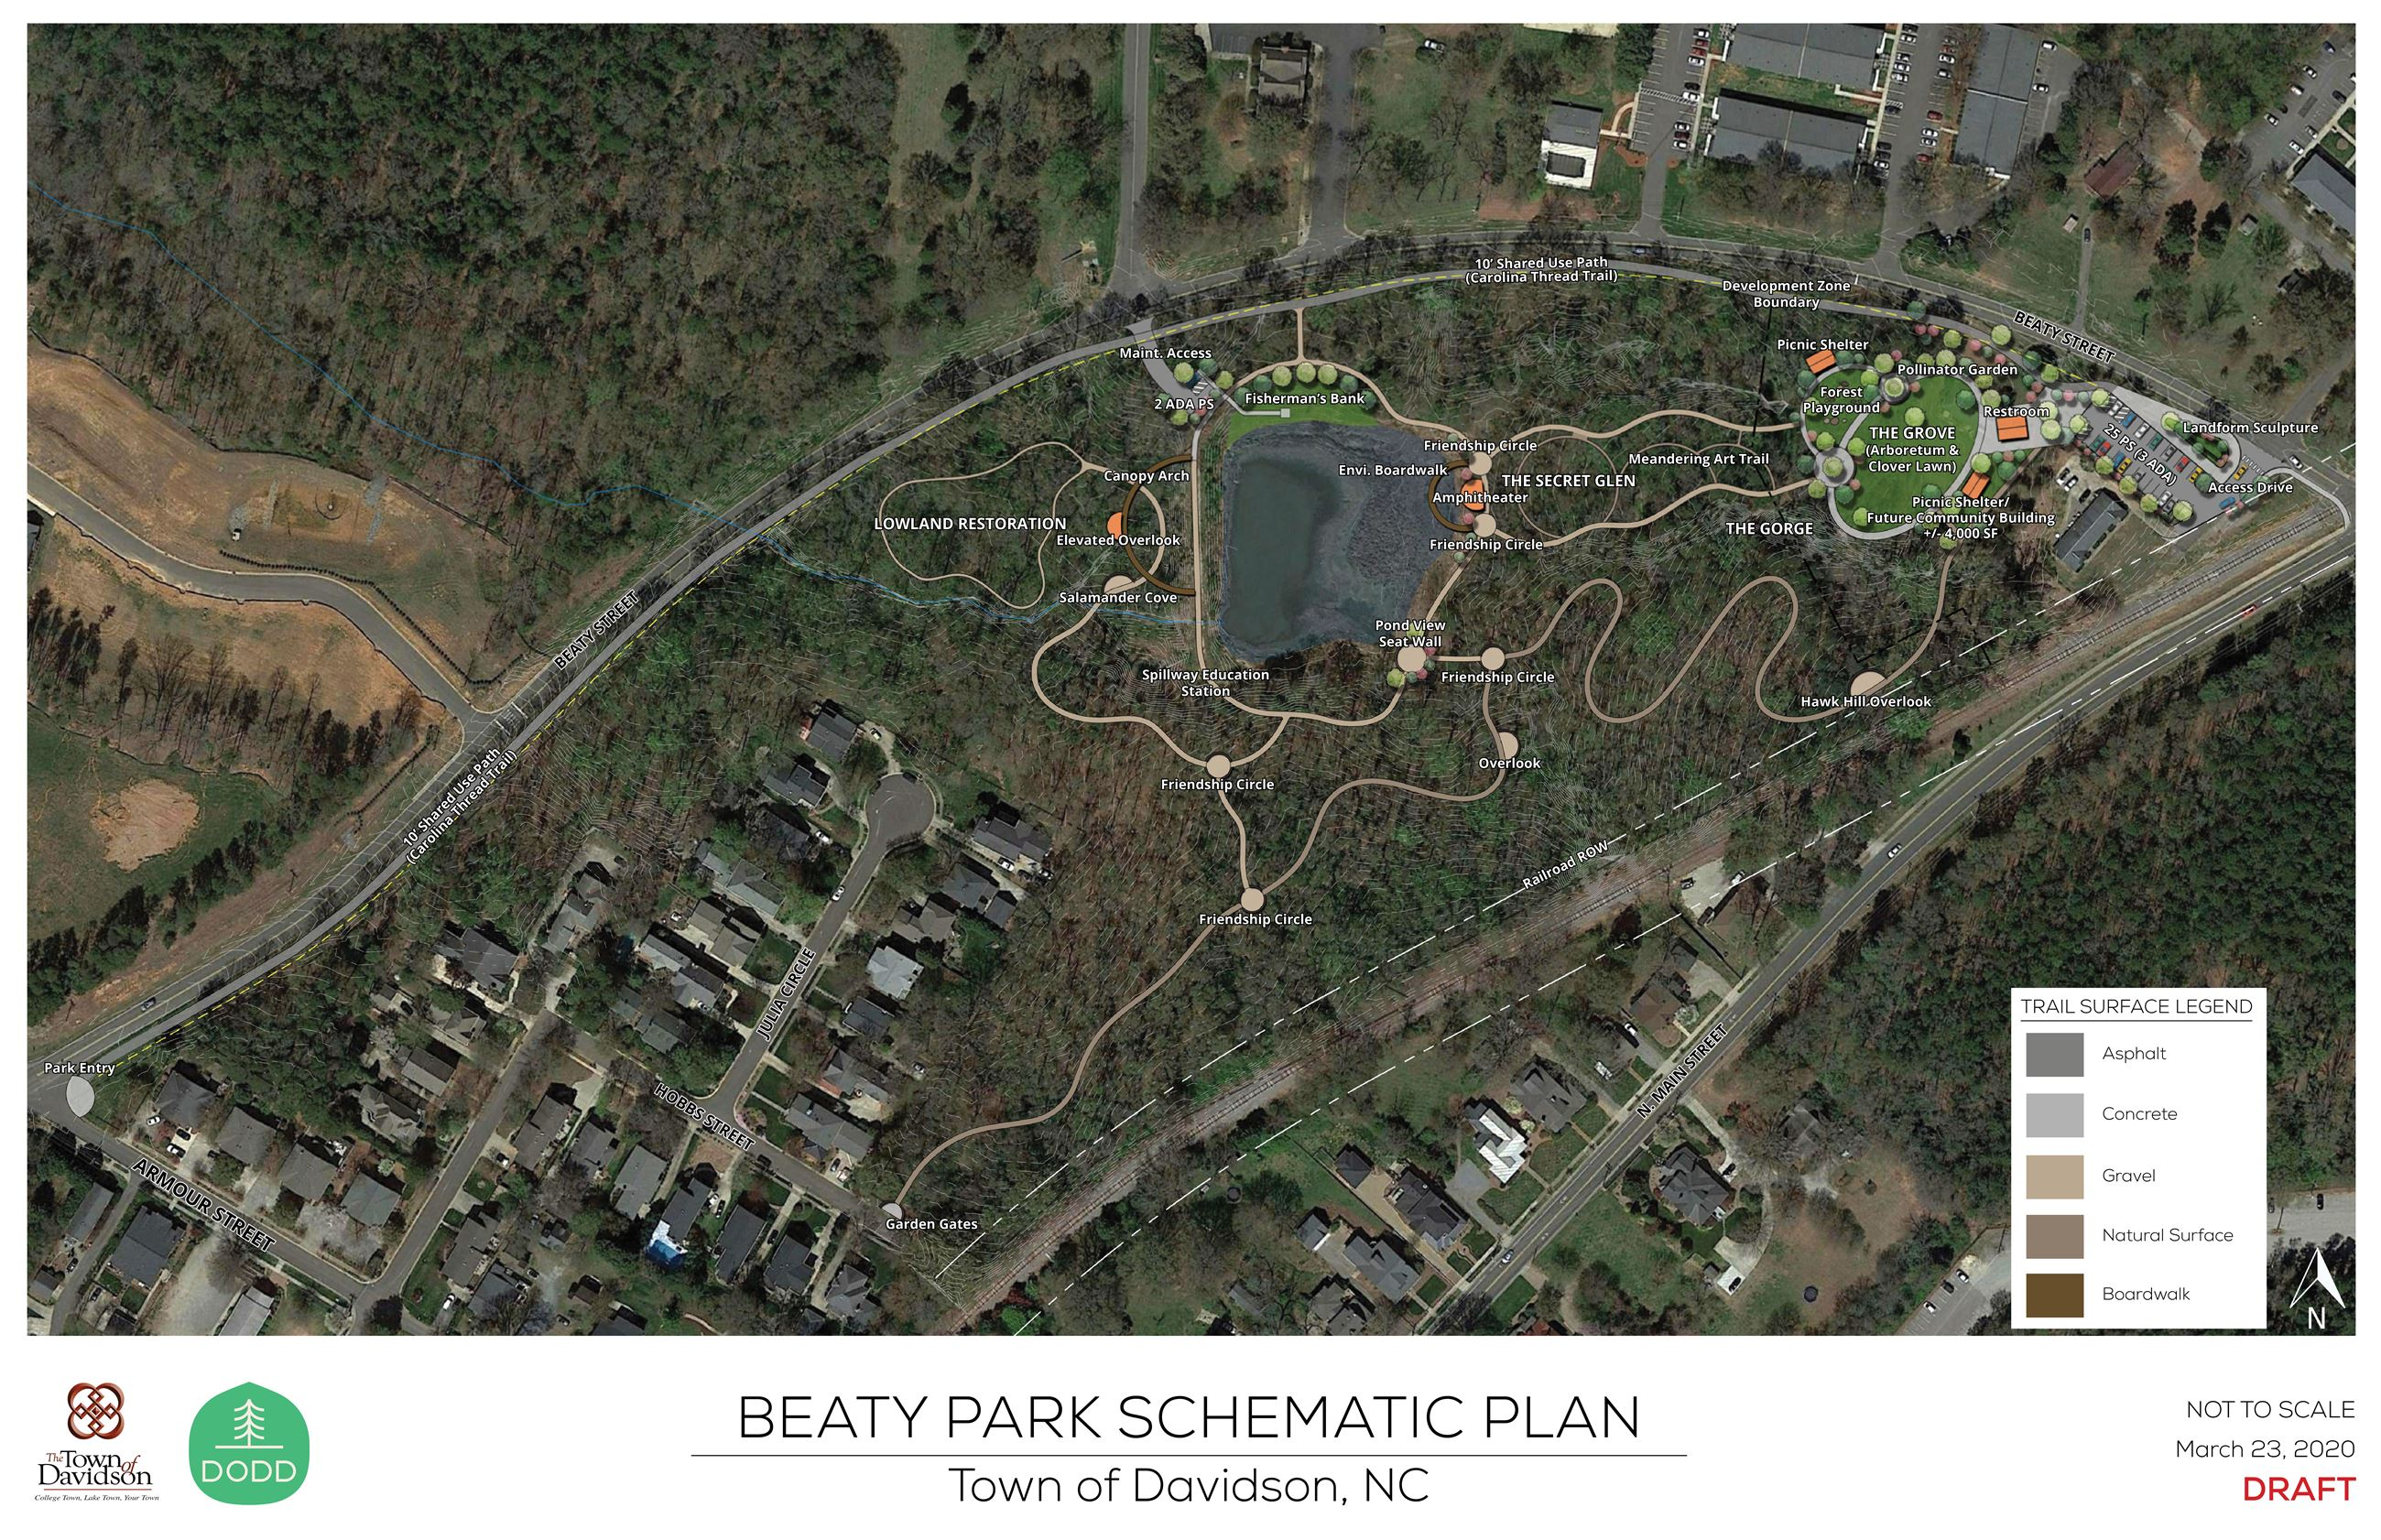 Beaty Park Schematic Plan Interim Updates 4.3.2020 JPEG